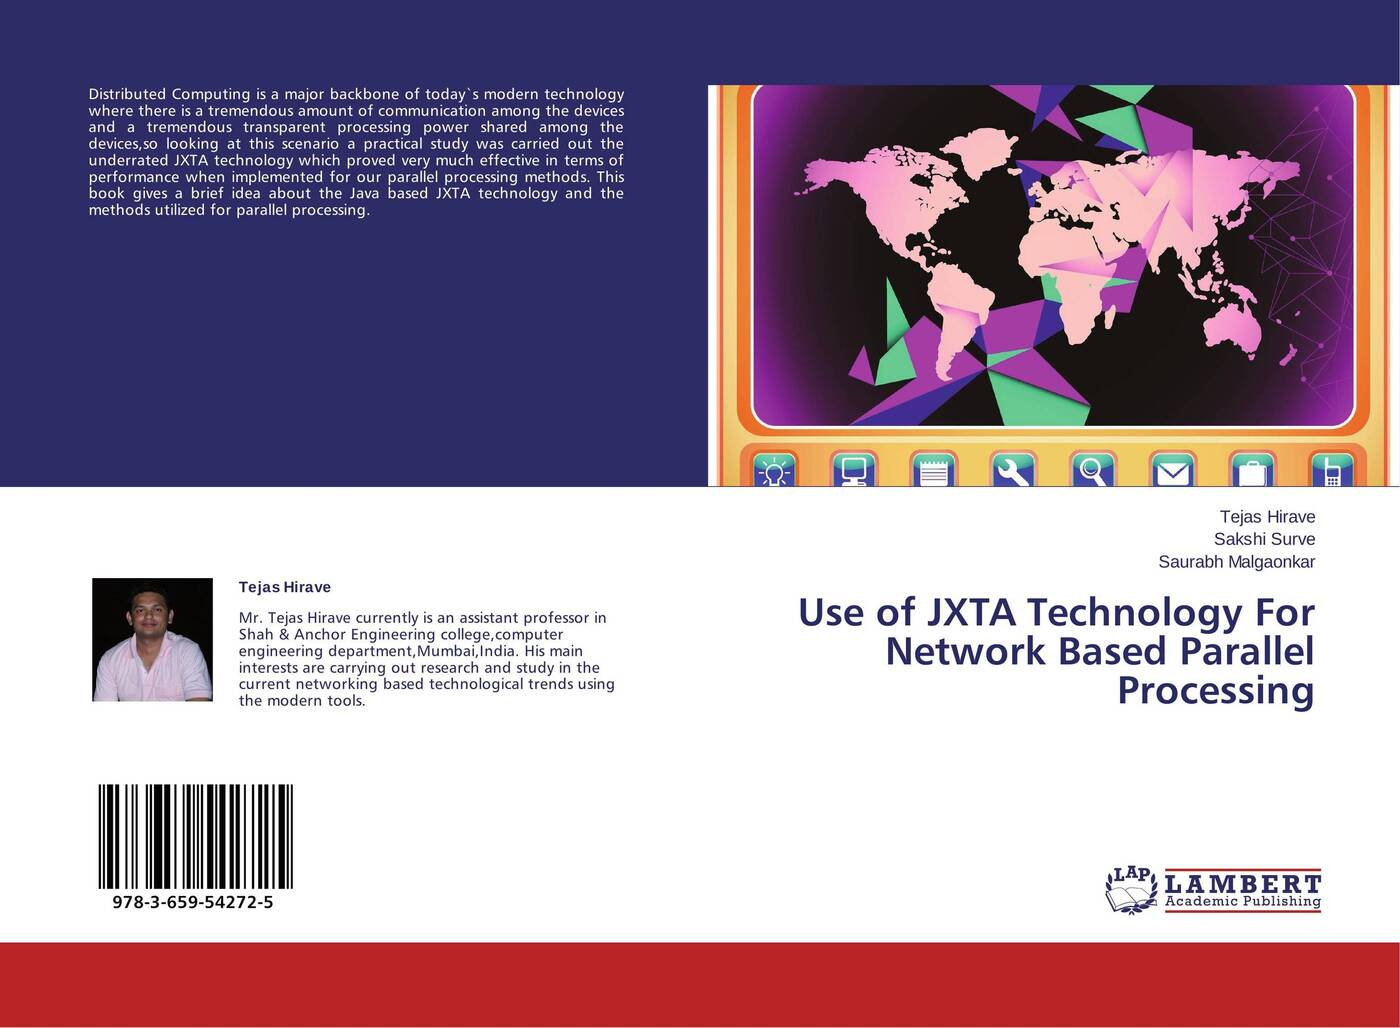 Tejas Hirave,Sakshi Surve and Saurabh Malgaonkar Use of JXTA Technology For Network Based Parallel Processing цена в Москве и Питере